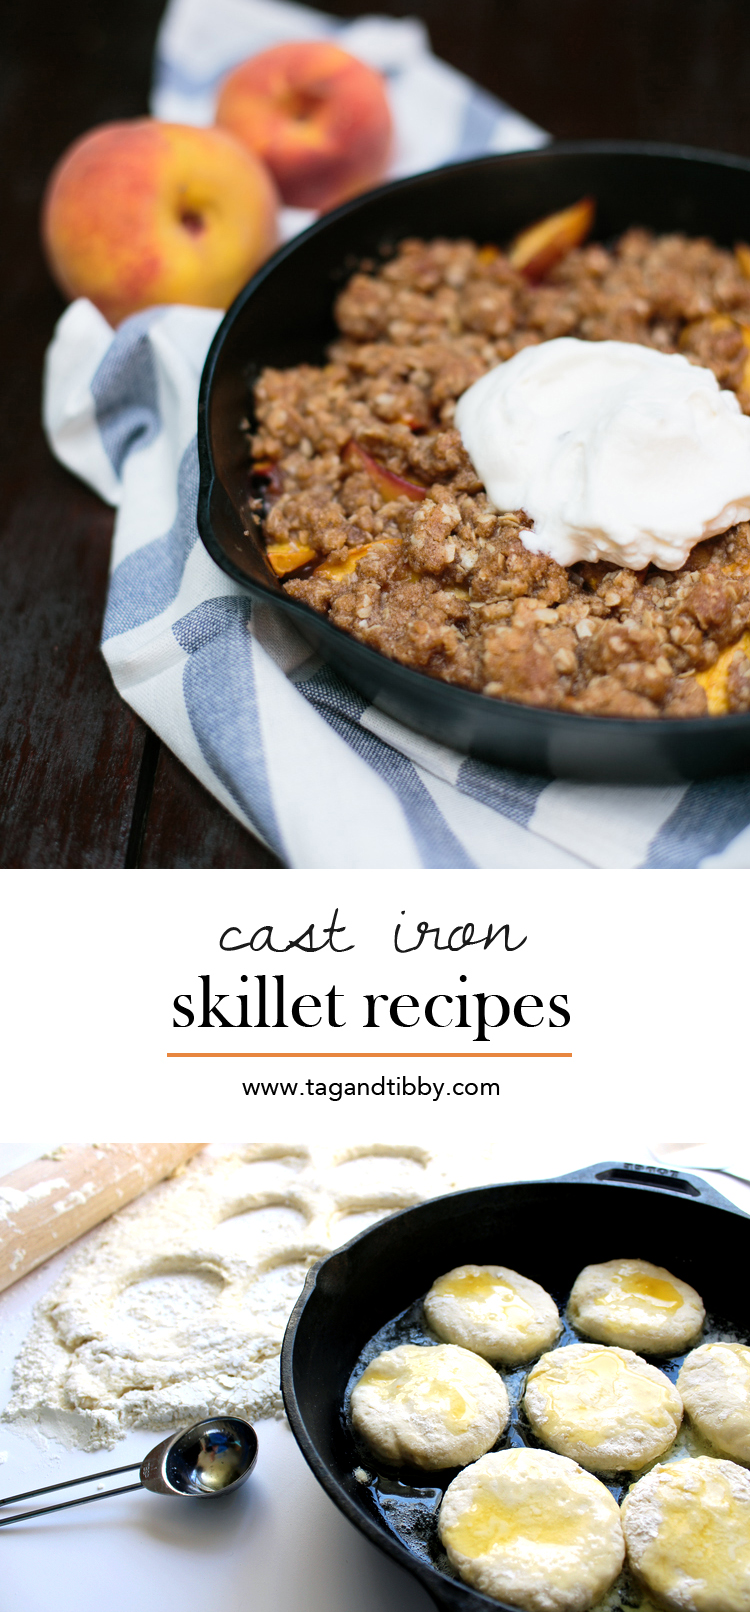 5 Classic Cast Iron Skillet Recipes via Tag&Tibby